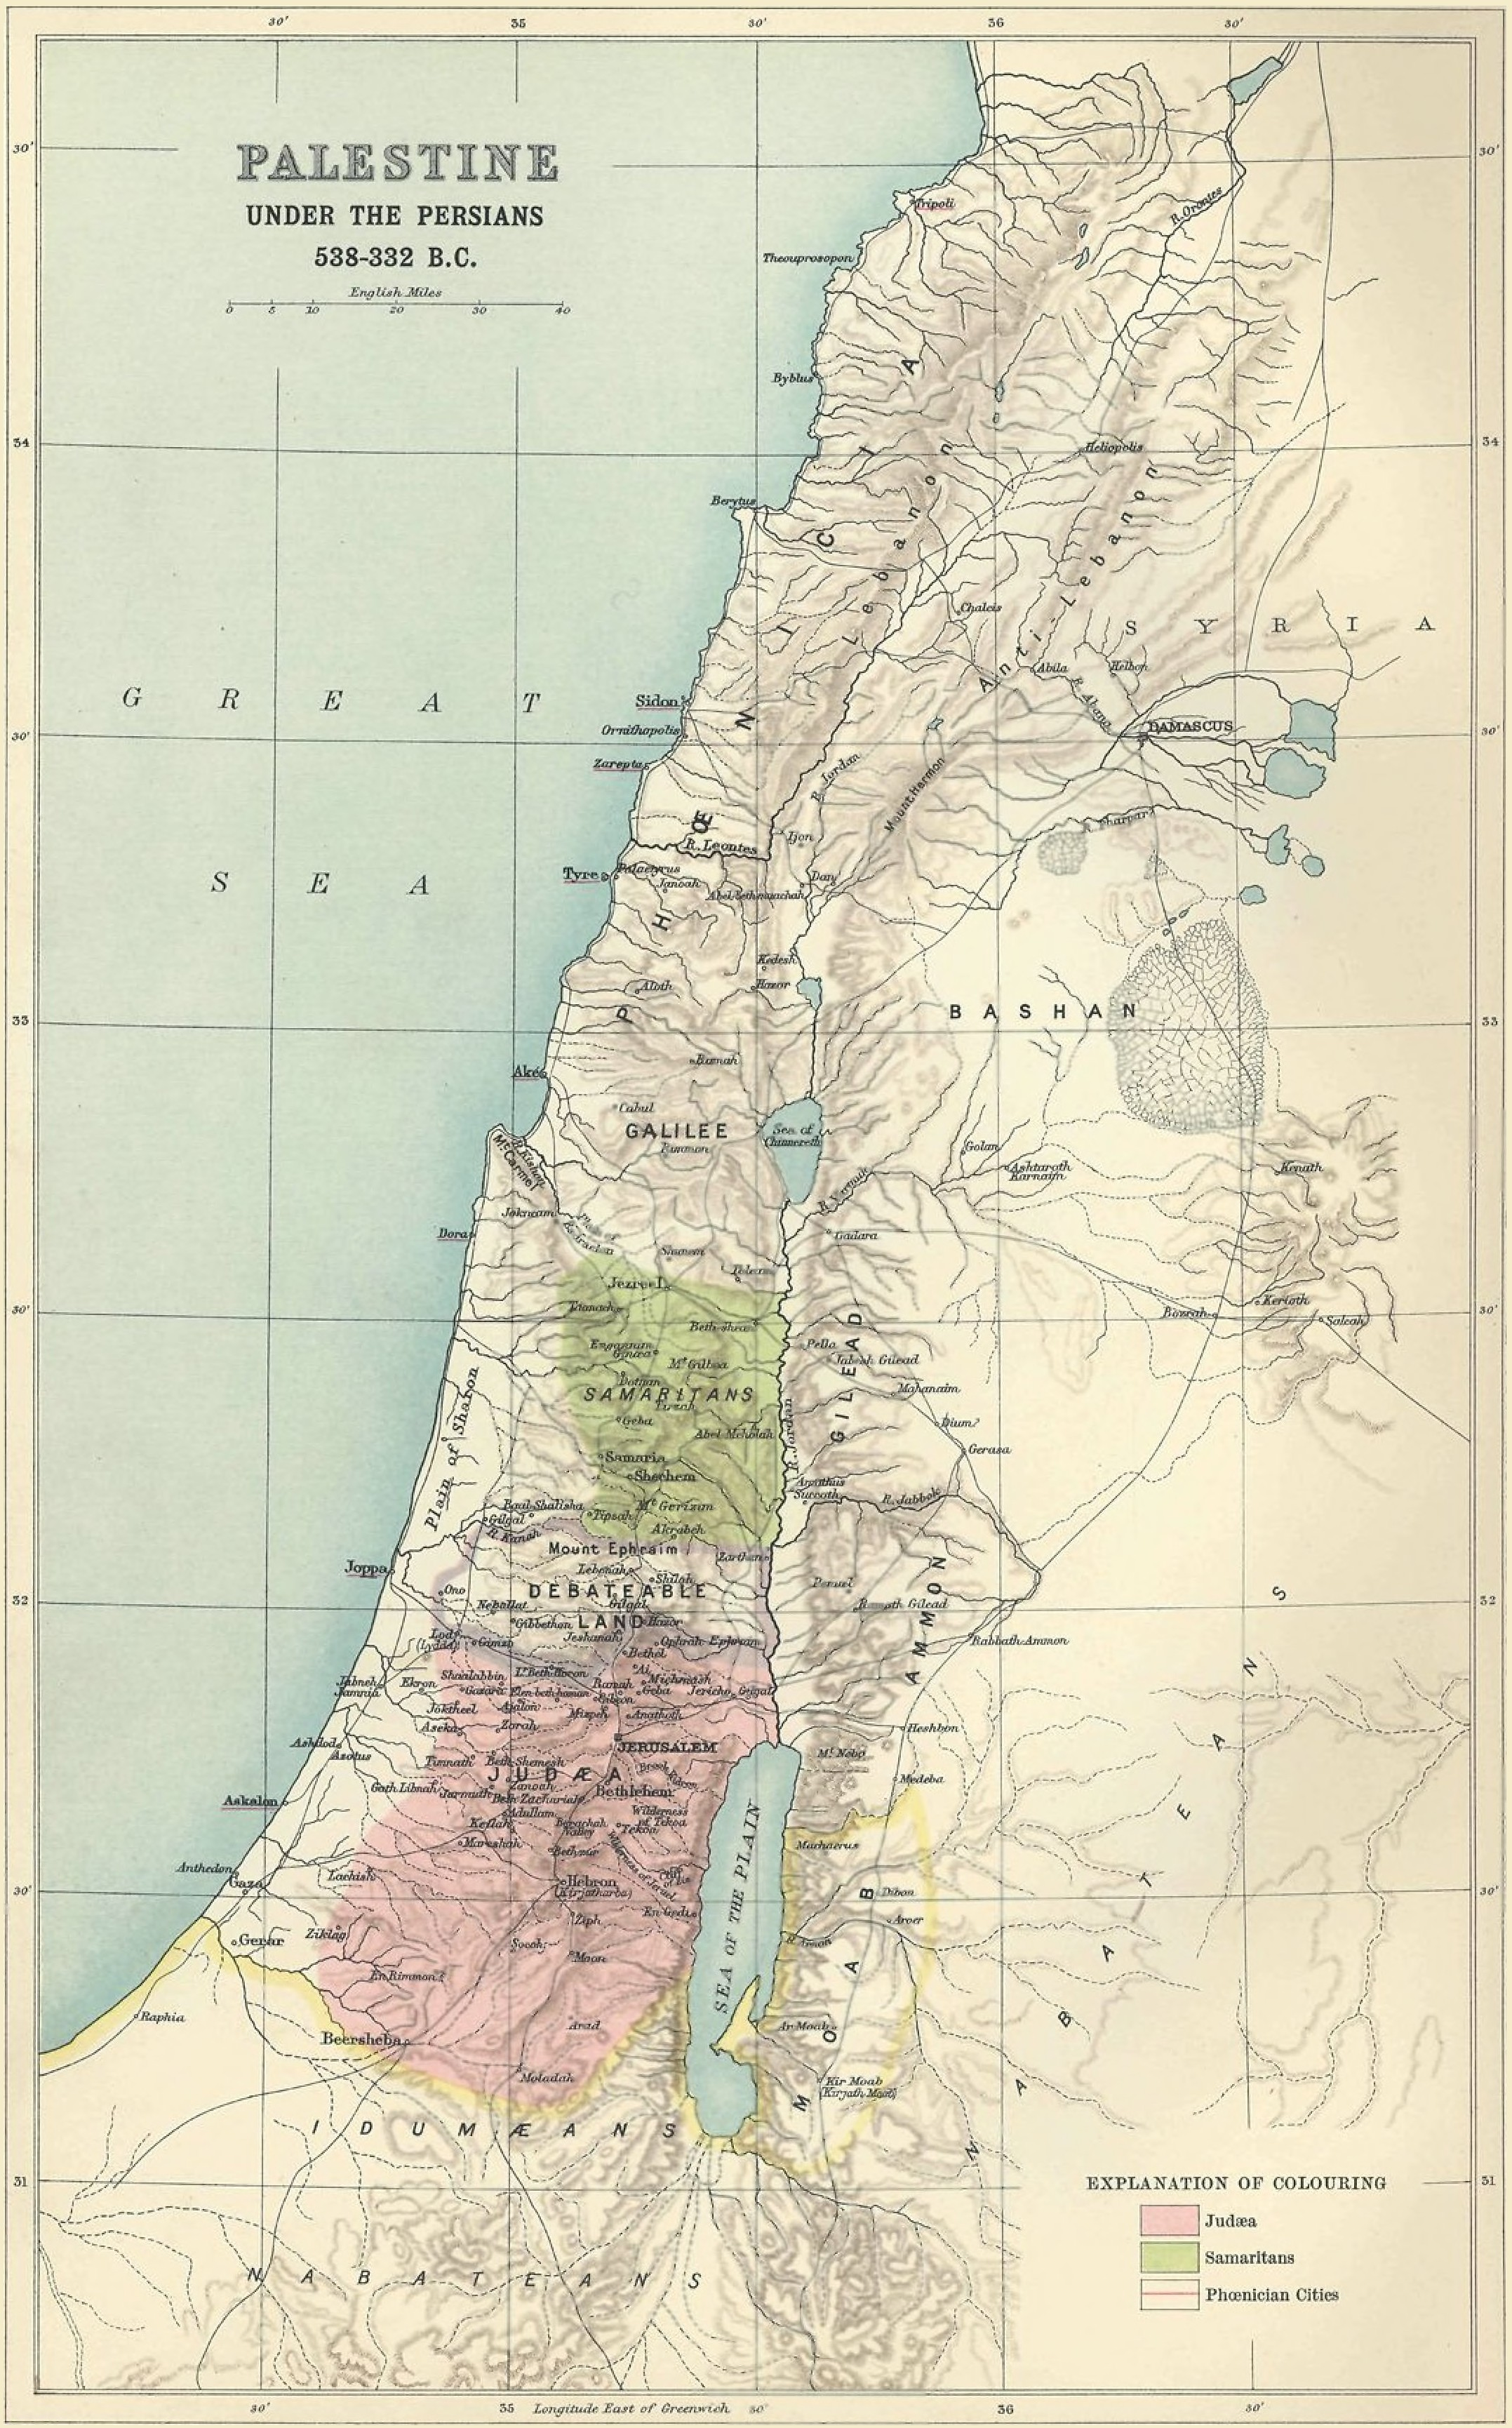 Palestine_under_the_Persians_Smith_1915.jpg